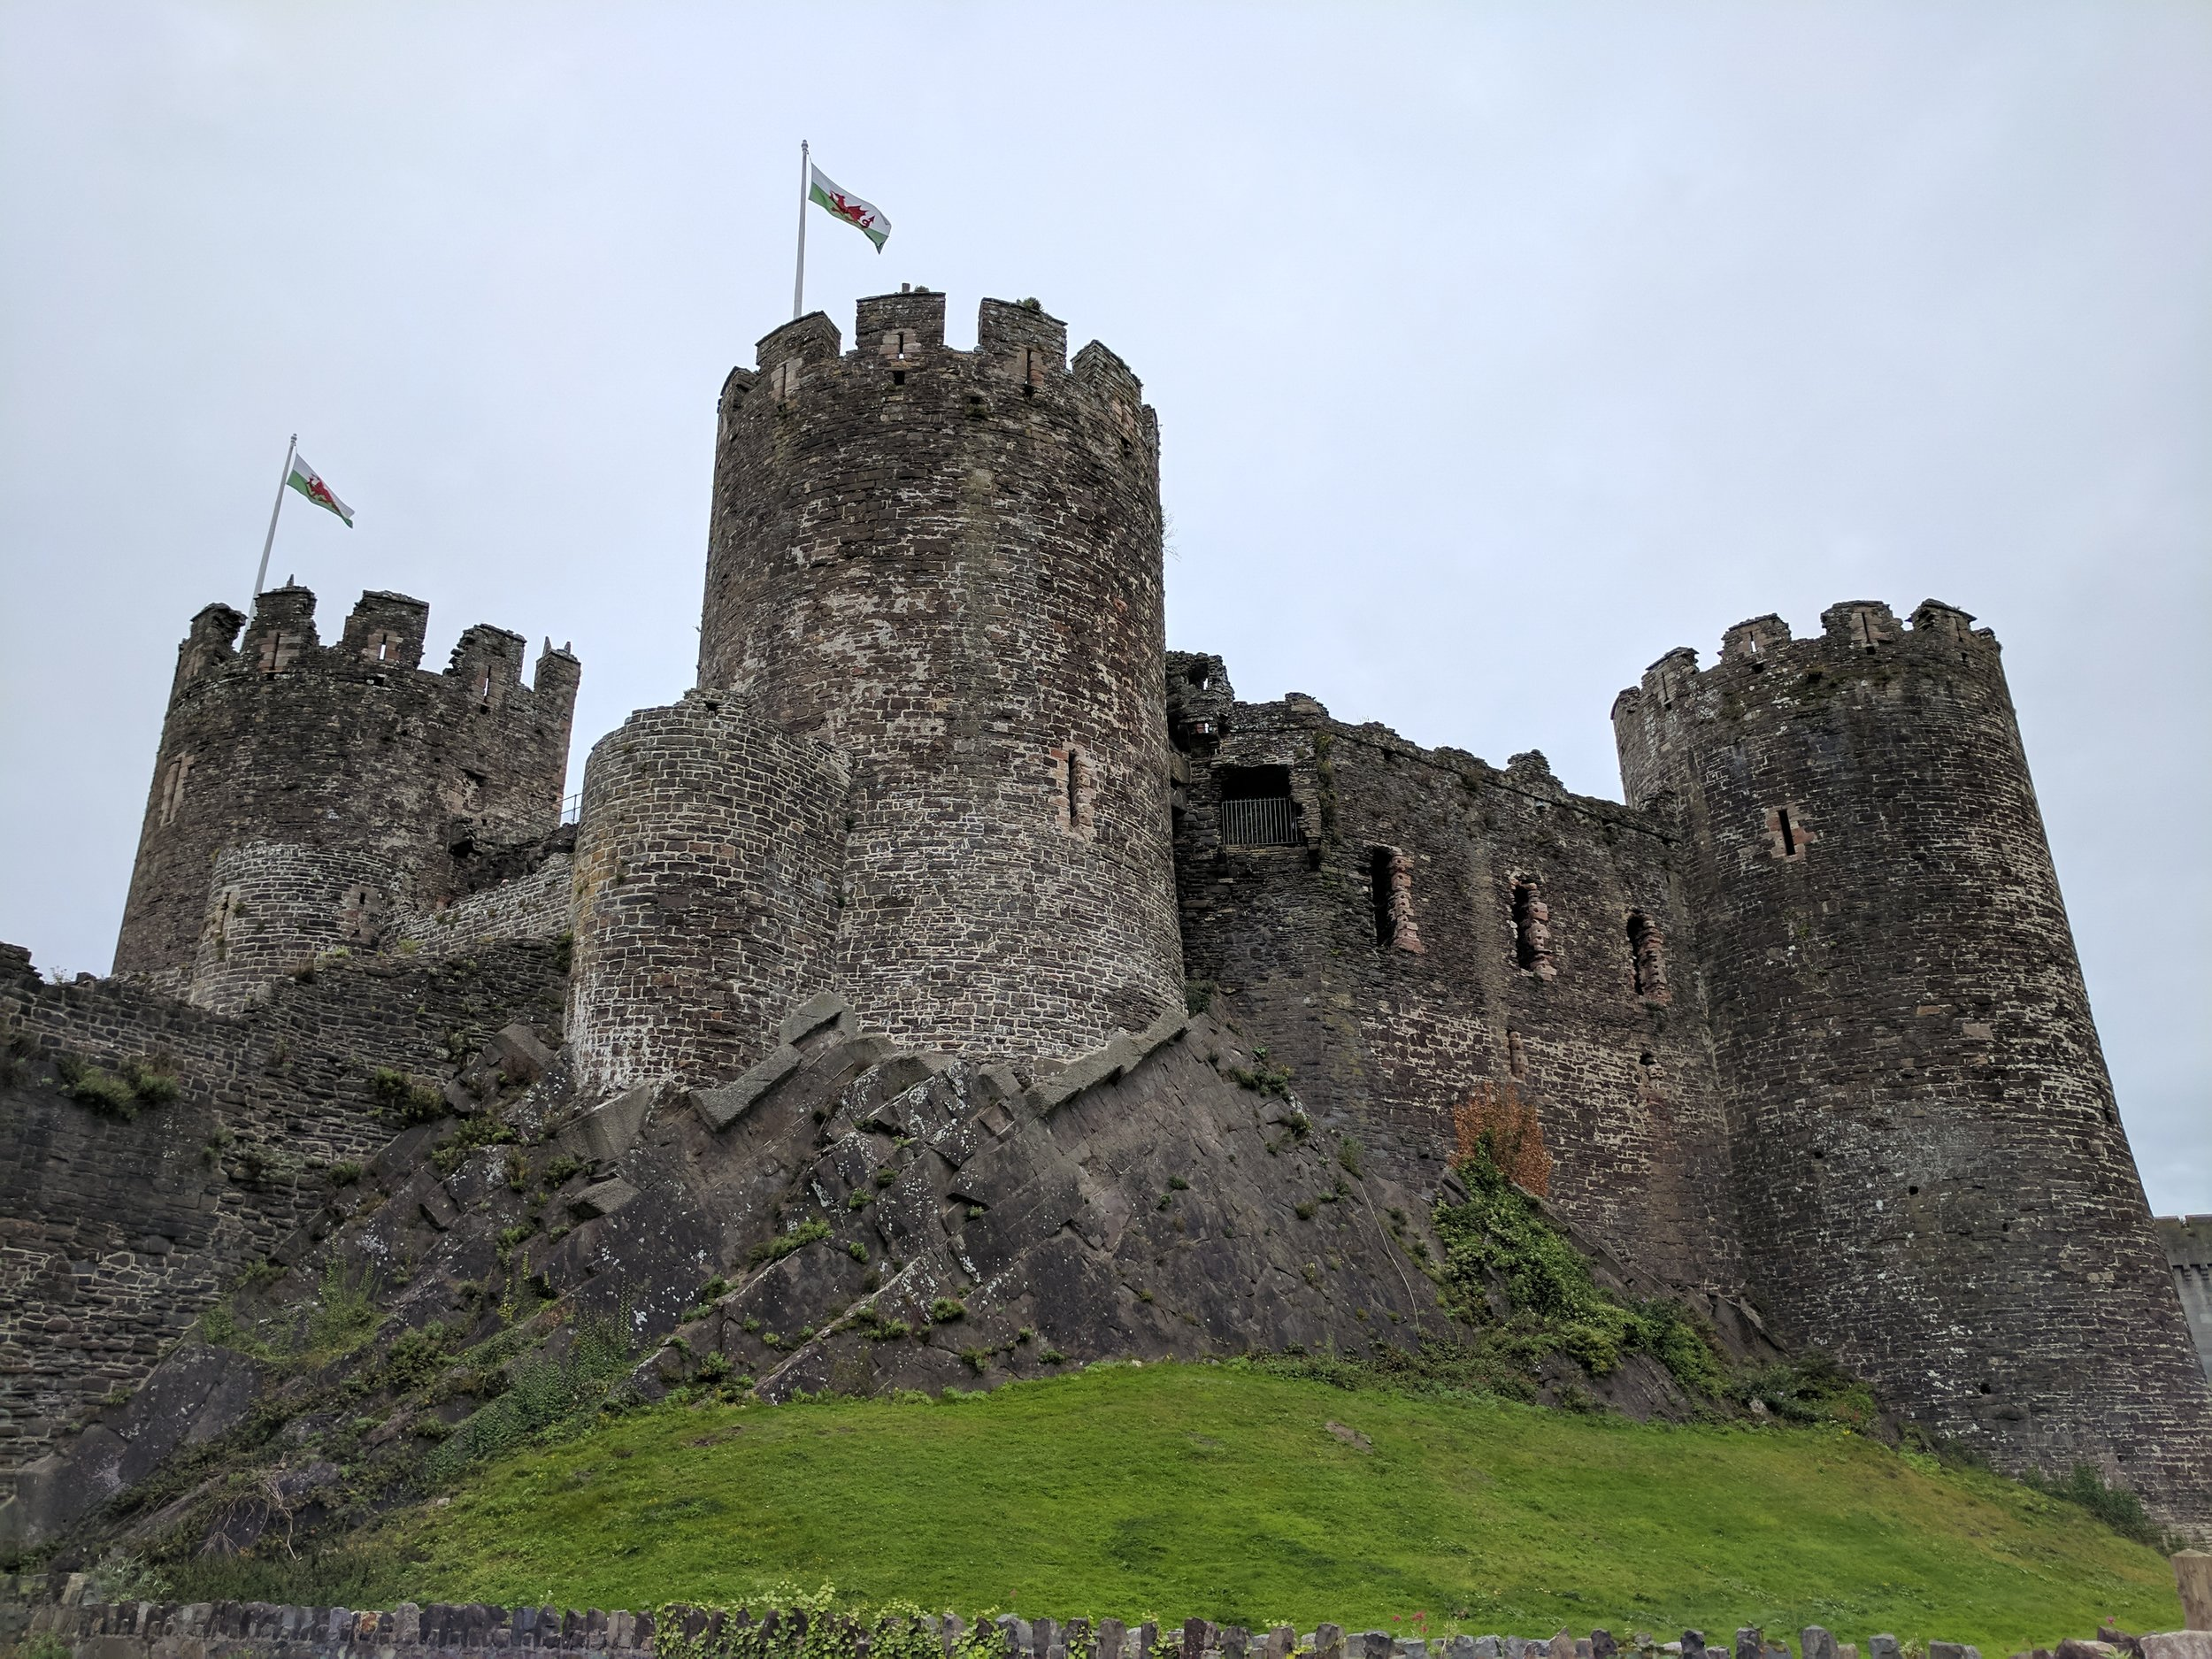 Conwy Castle in Conwy, Wales